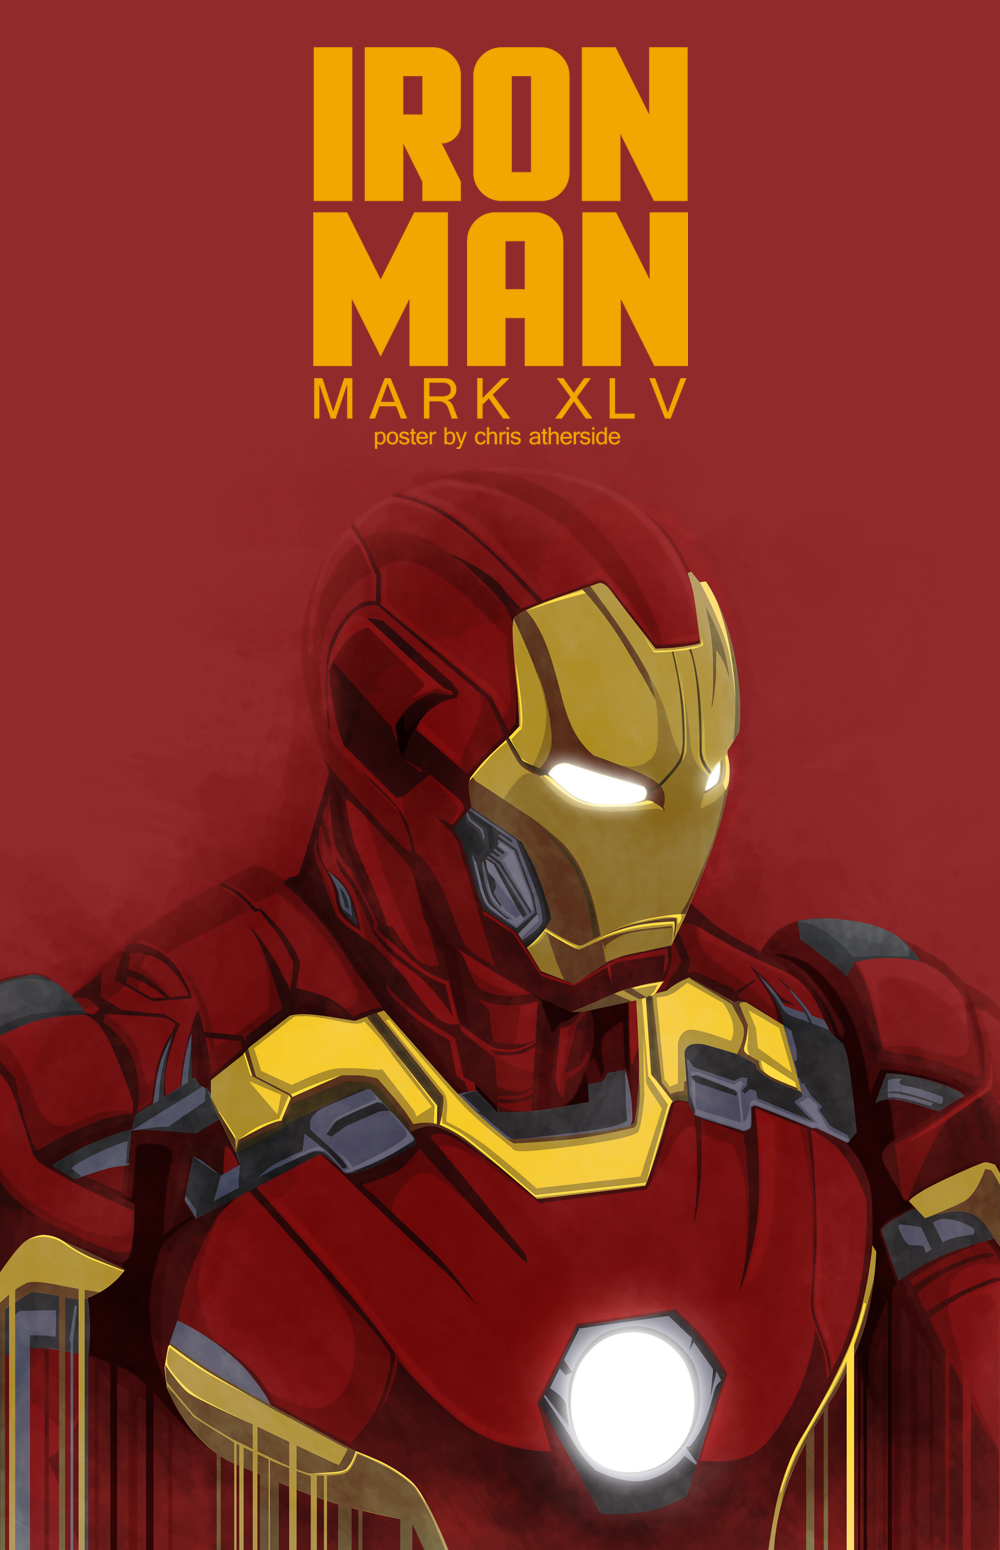 iron man mark xlvatherside on deviantart